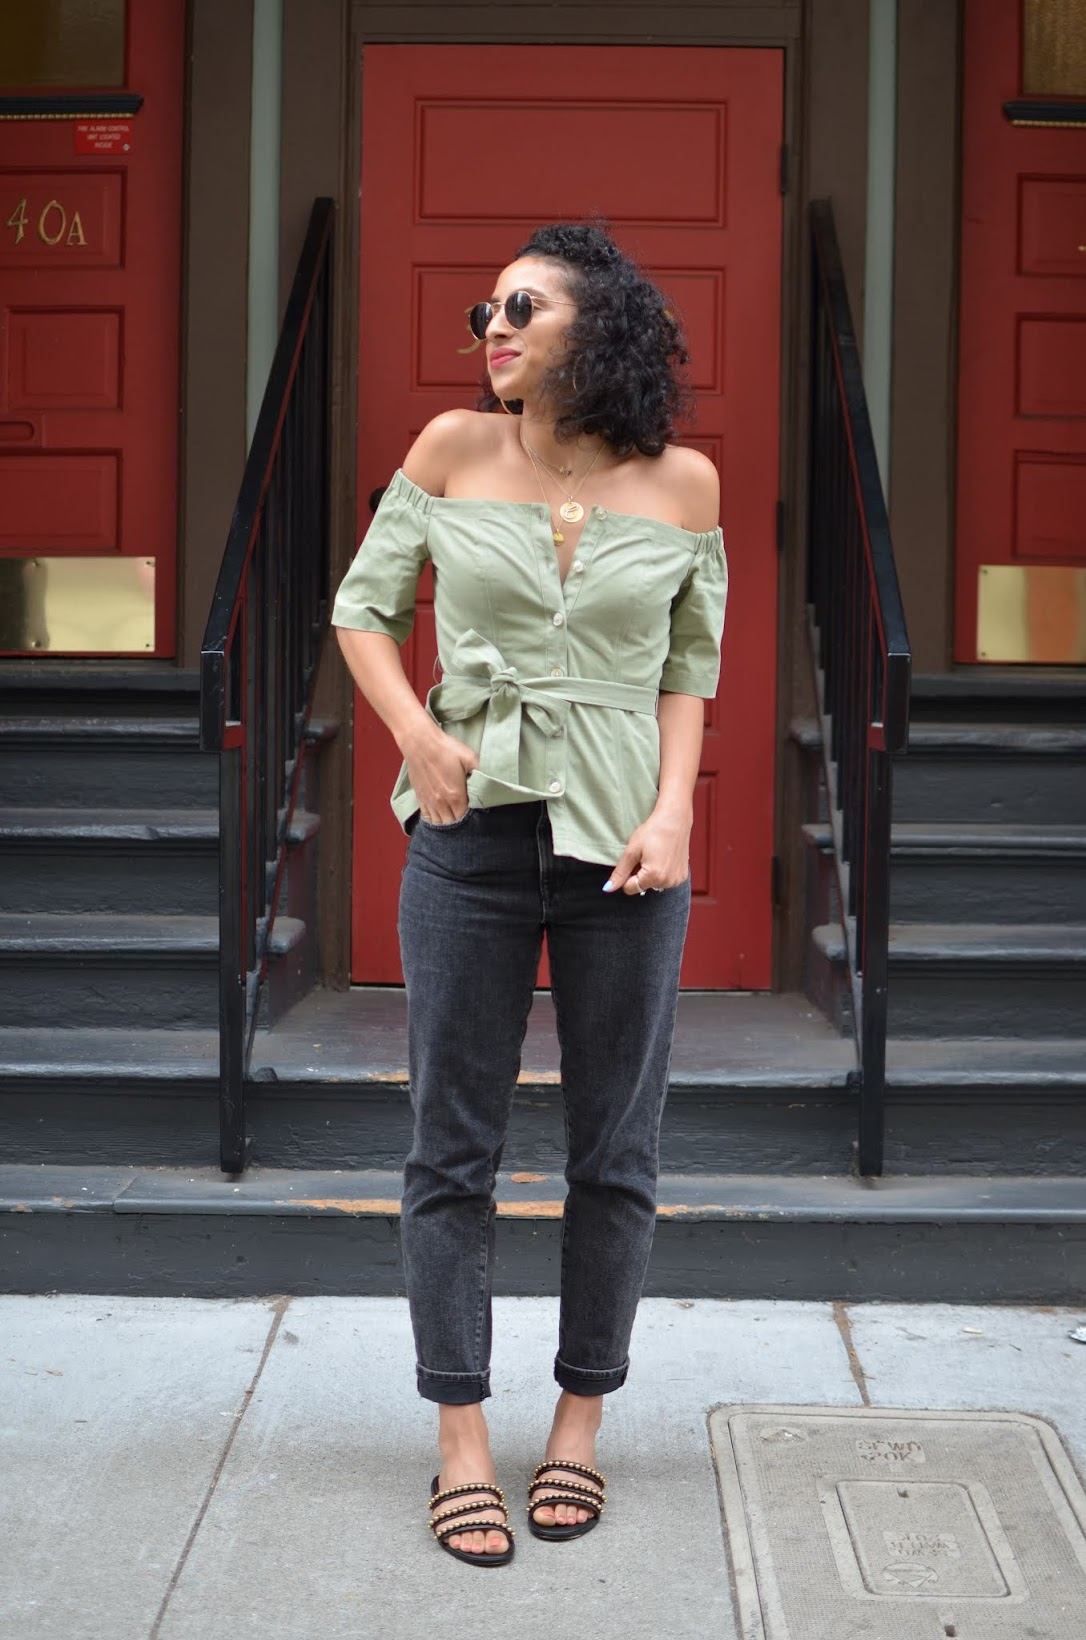 Banana Republic off the shoulder top with removable belt, Banana Republic, pre-fall style, short curly hair styles